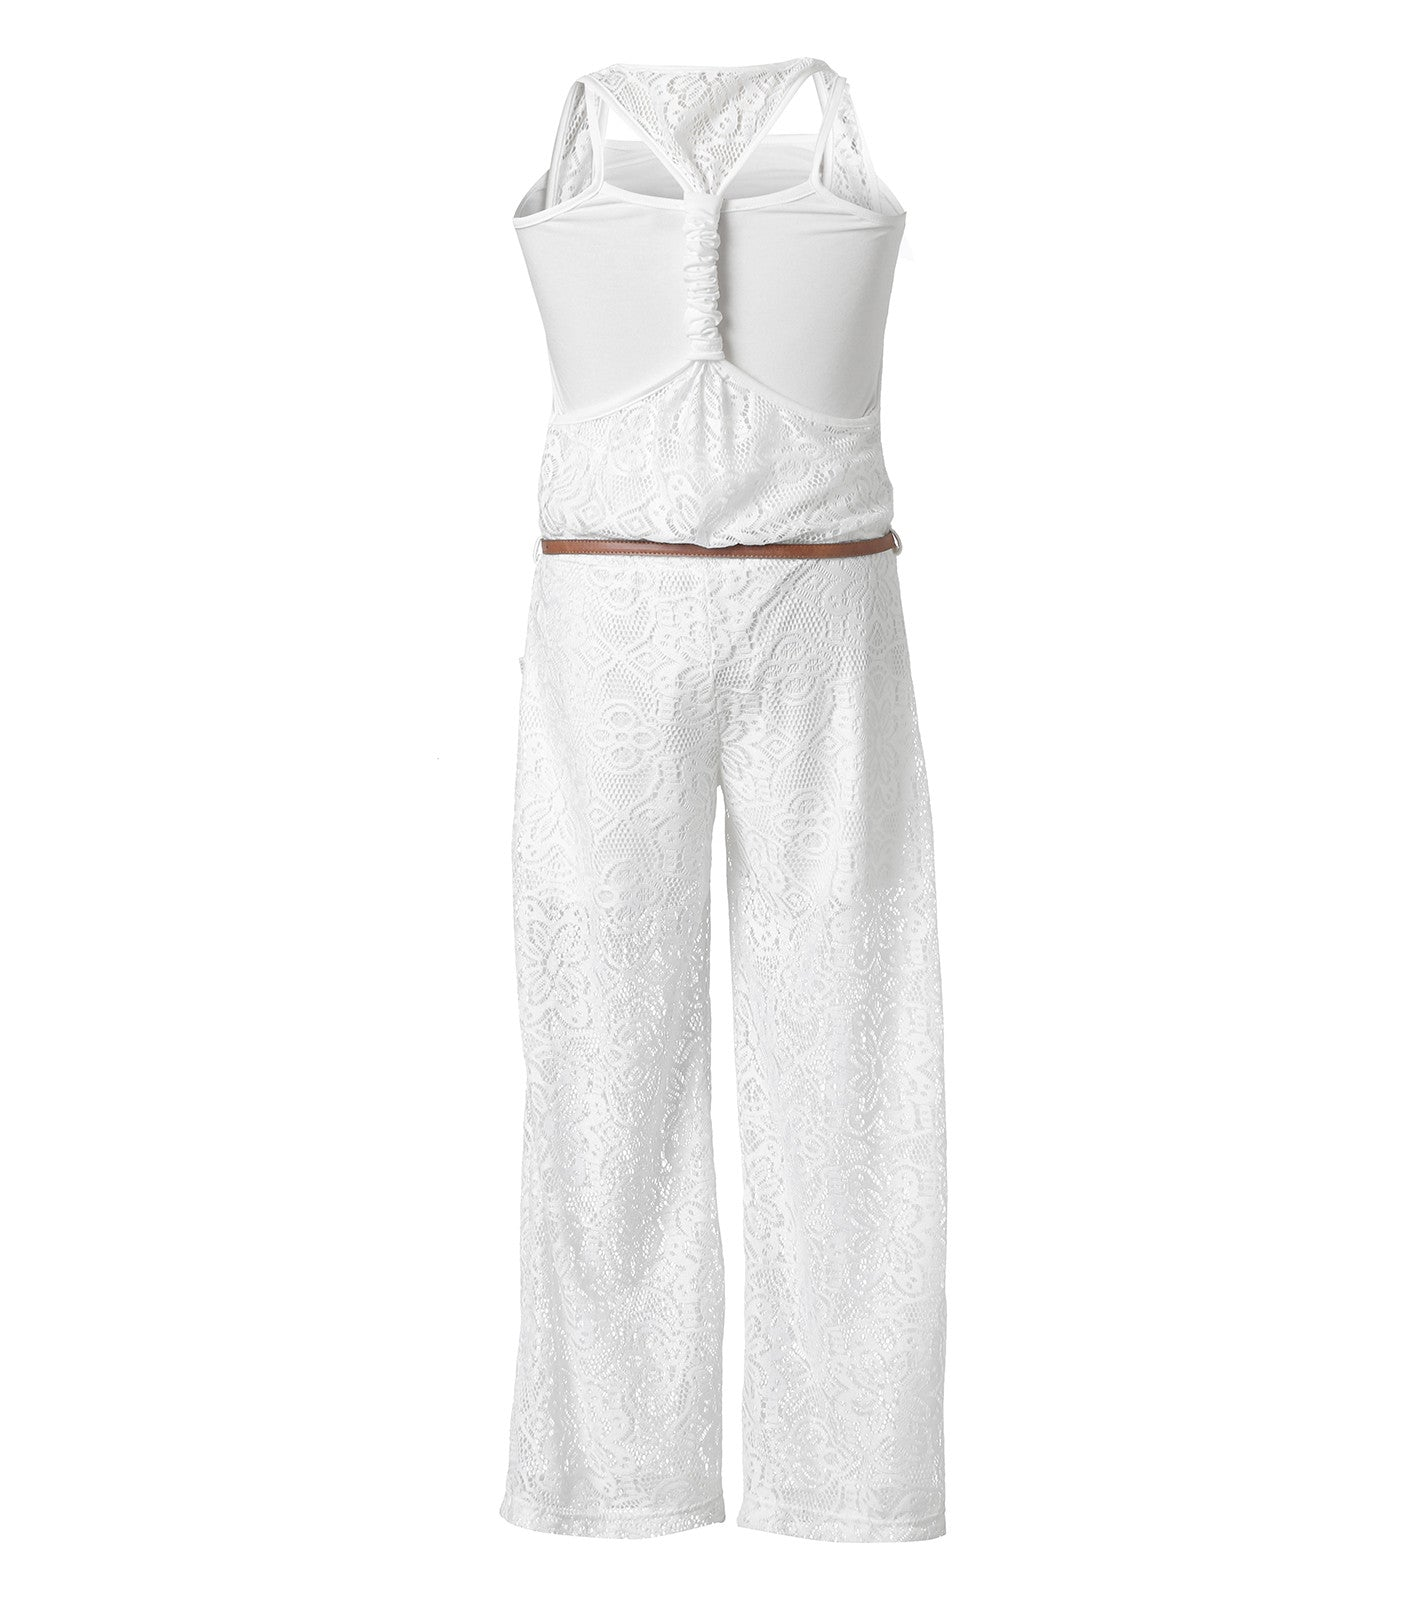 Lace Jumpsuit in White For Girls